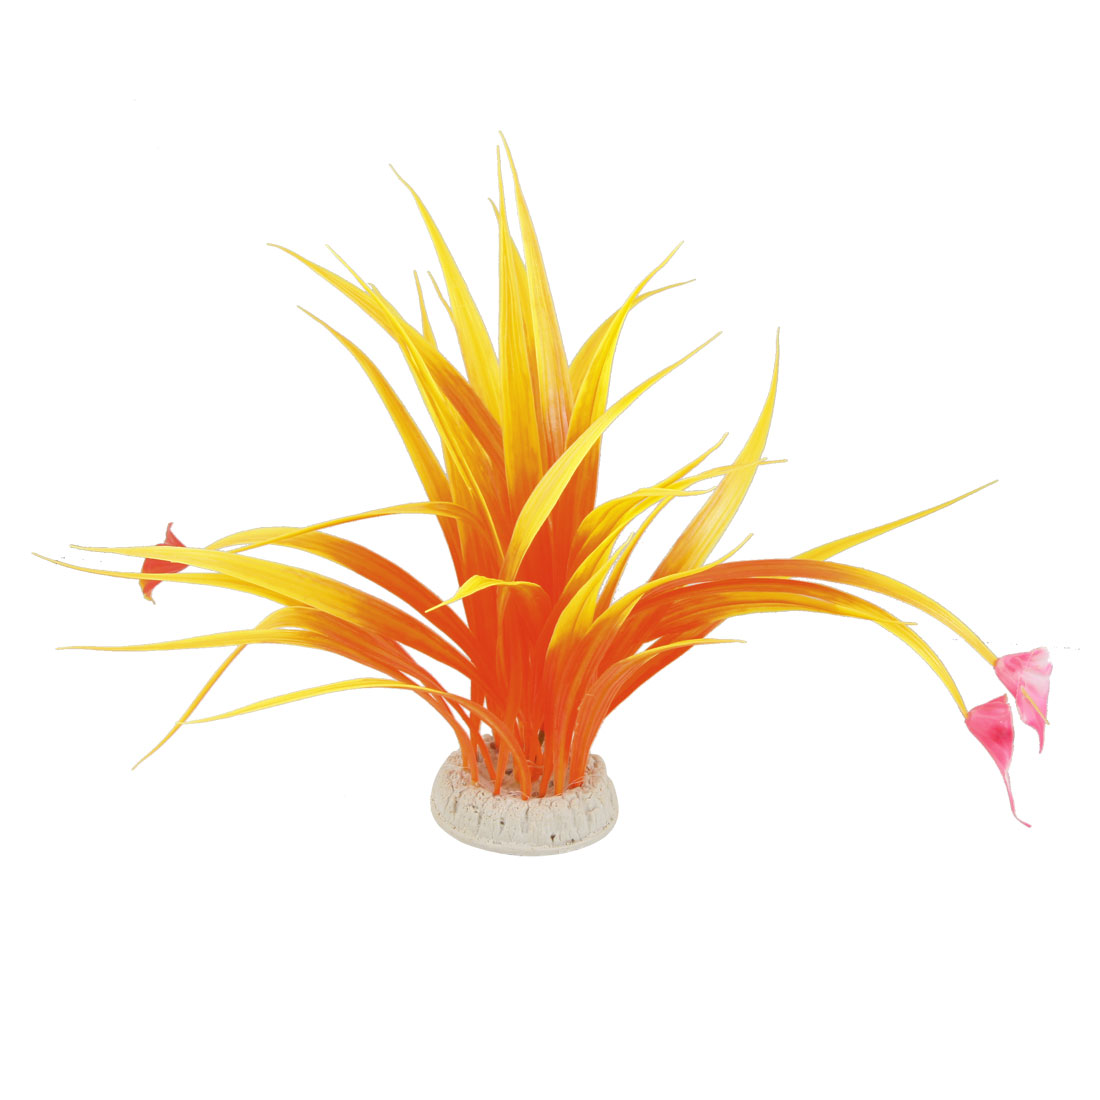 Aquarium Plastic Fuchsia Flowers Accent Orange Yellow Plants for Fish Tank